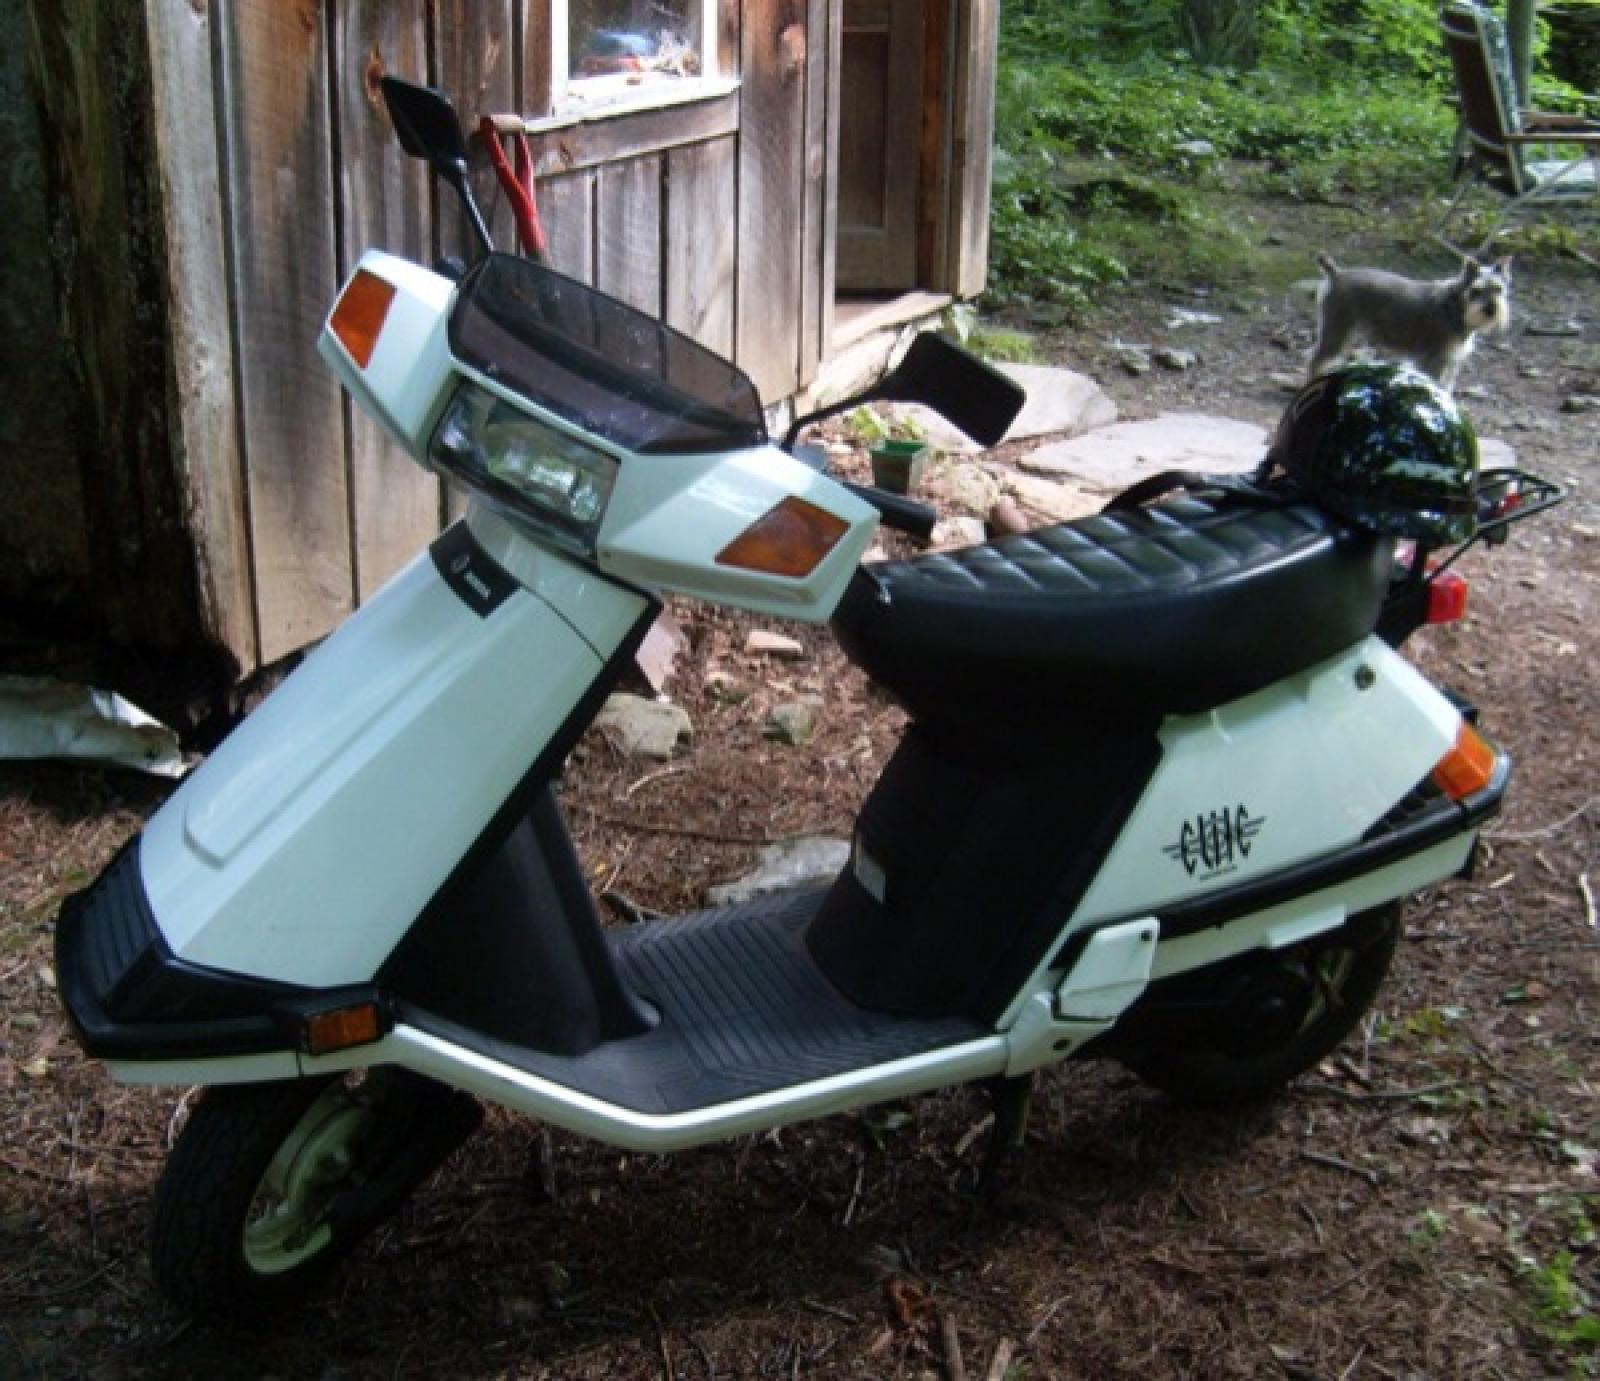 800 1024 1280 1600 origin Honda Elite 80 ...